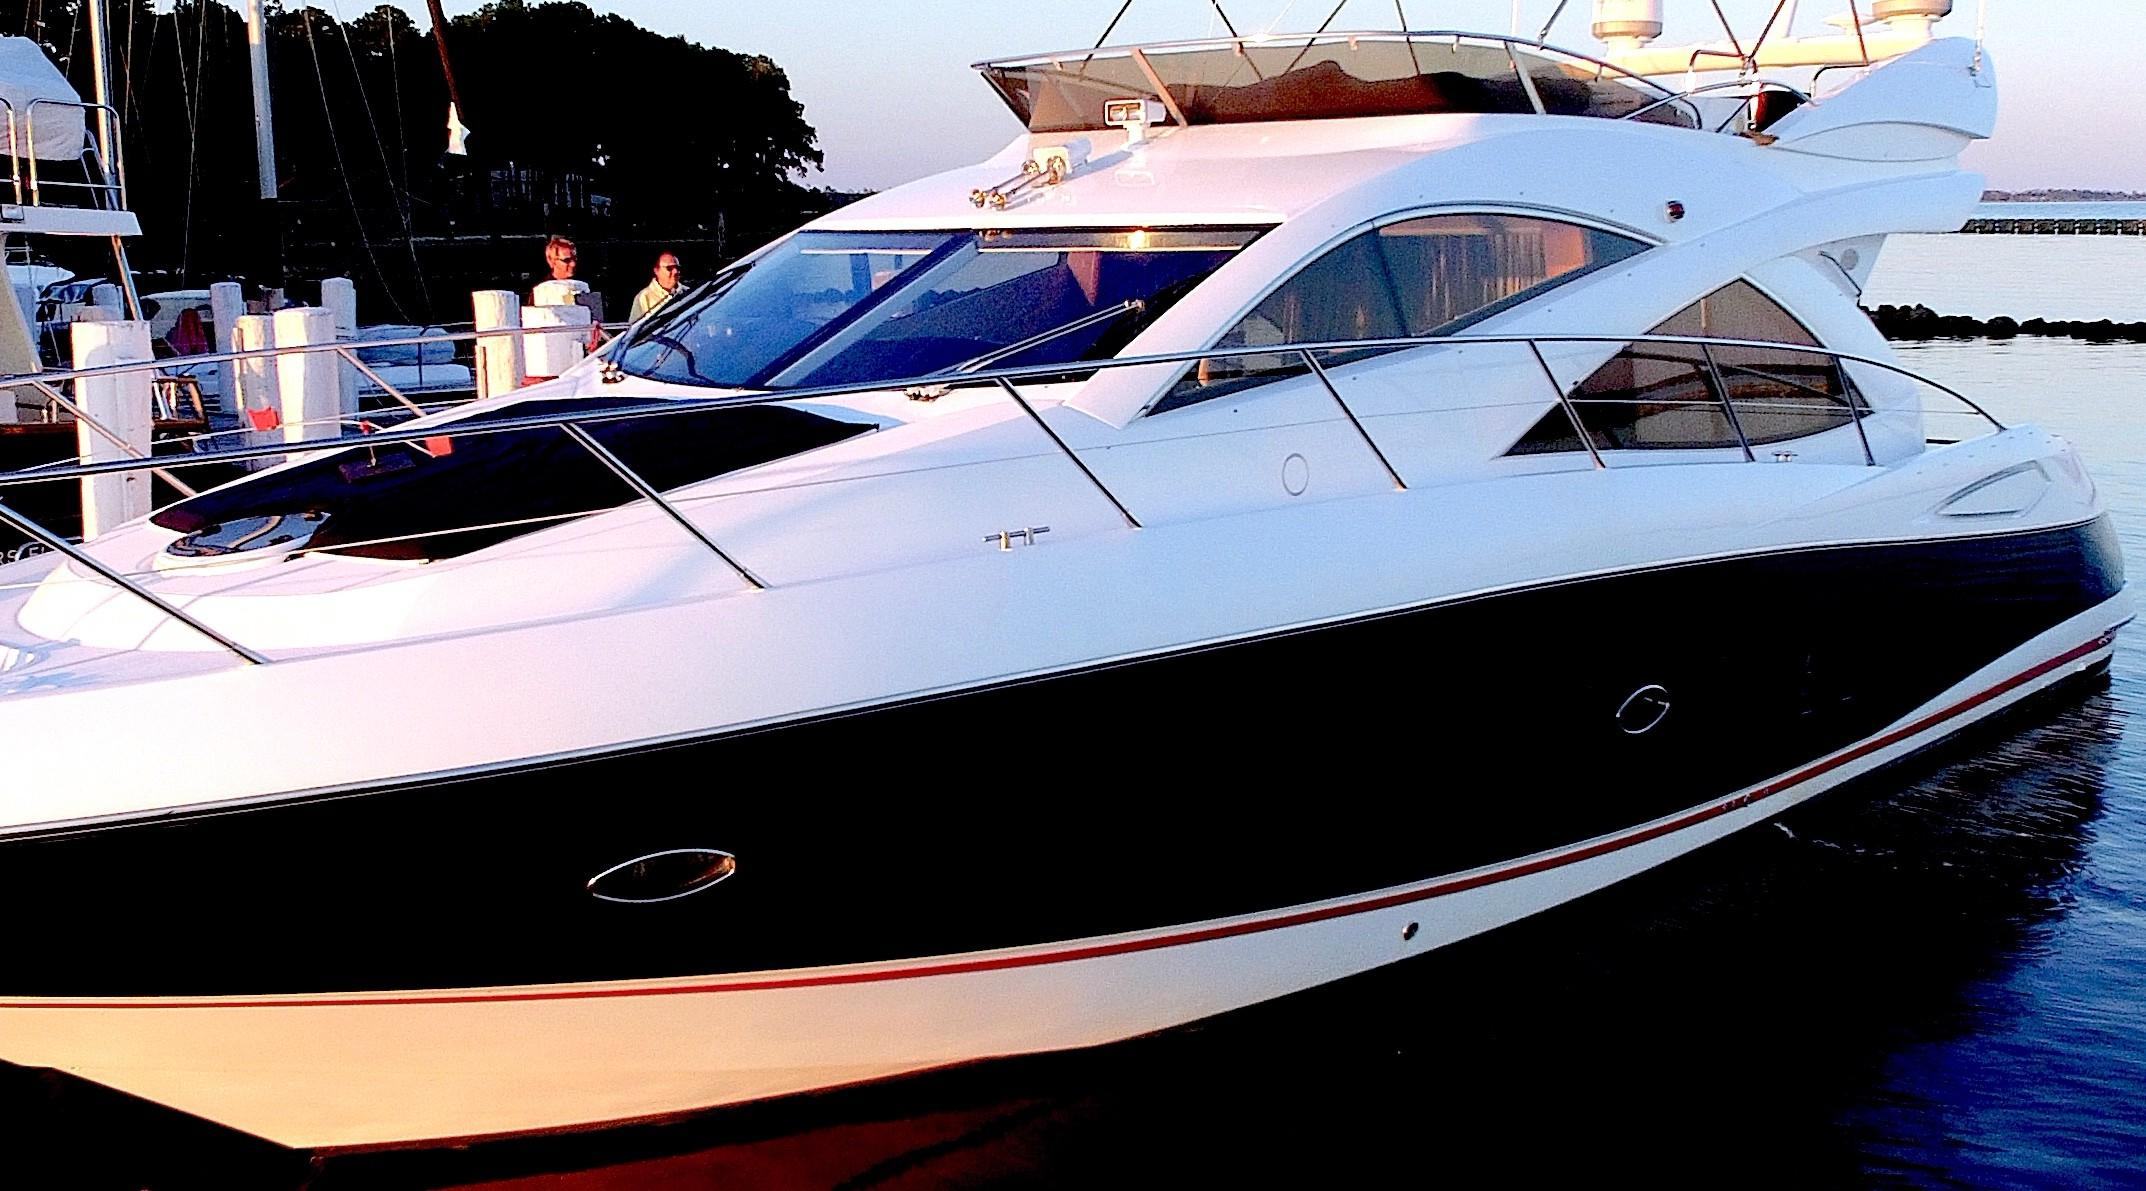 Sunseeker Boat Wiring Diagram Harness Schematics 12 Volt Schematic Fore Cookie 52 Yachts For Sale Rh Denisonyachtsales Com Diagrams